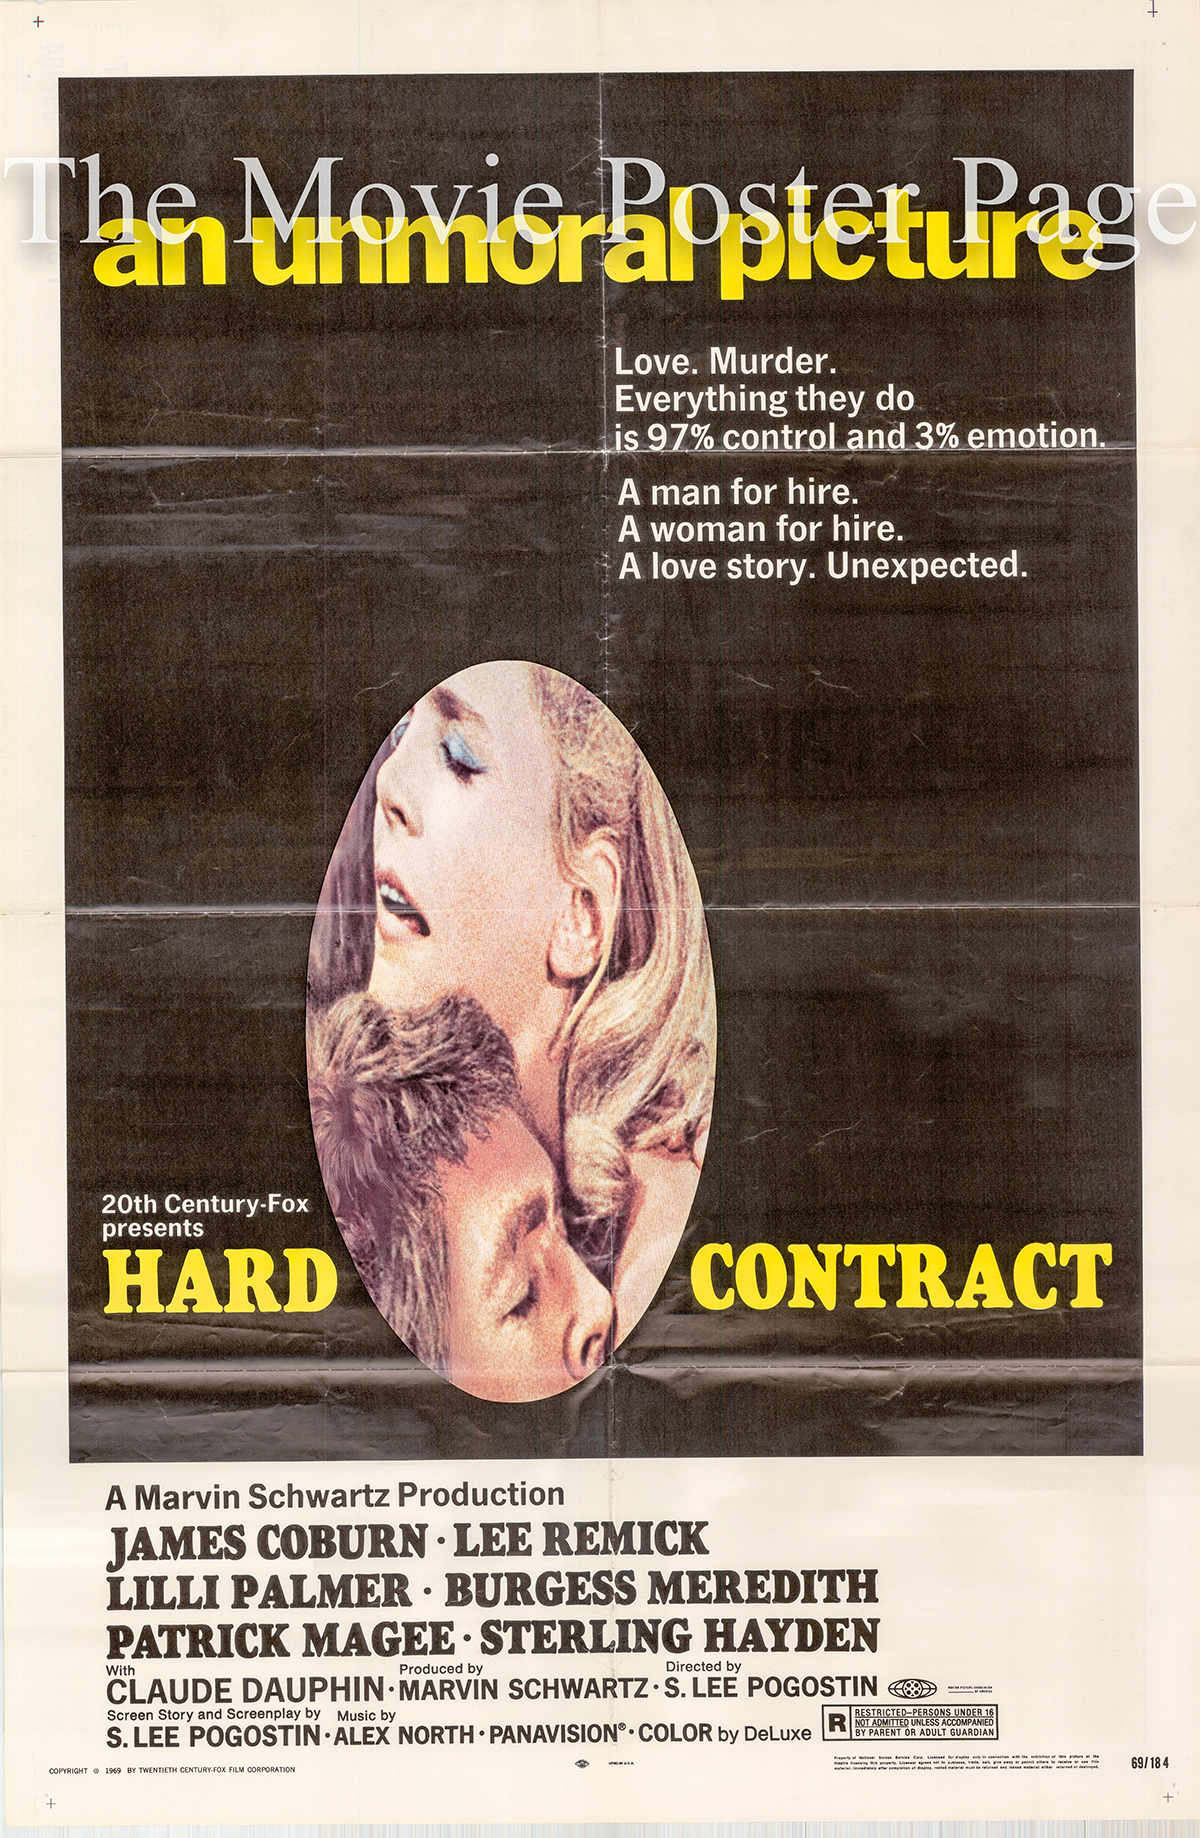 Pictured is a US one-sheet poster for the 1969 S. Lee Pogostin film Hard Contract starring James Coburn as John Cunningham.